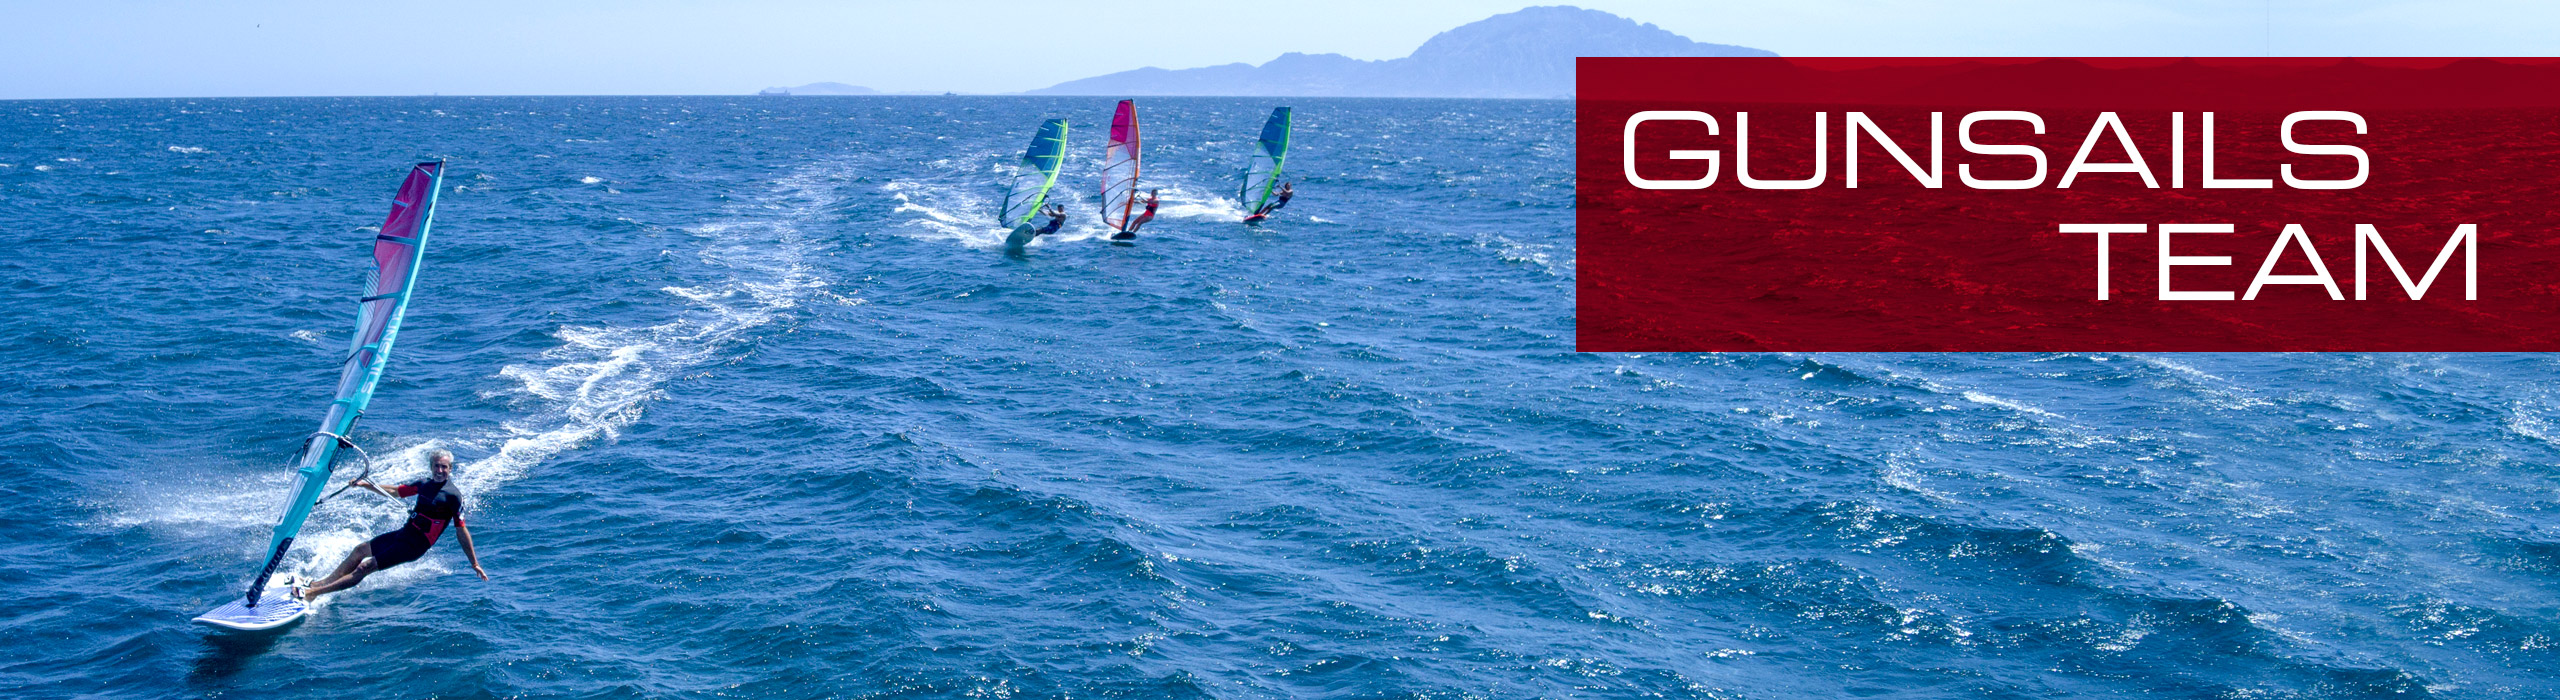 GUNSAILS | Windsurfing Pro Team